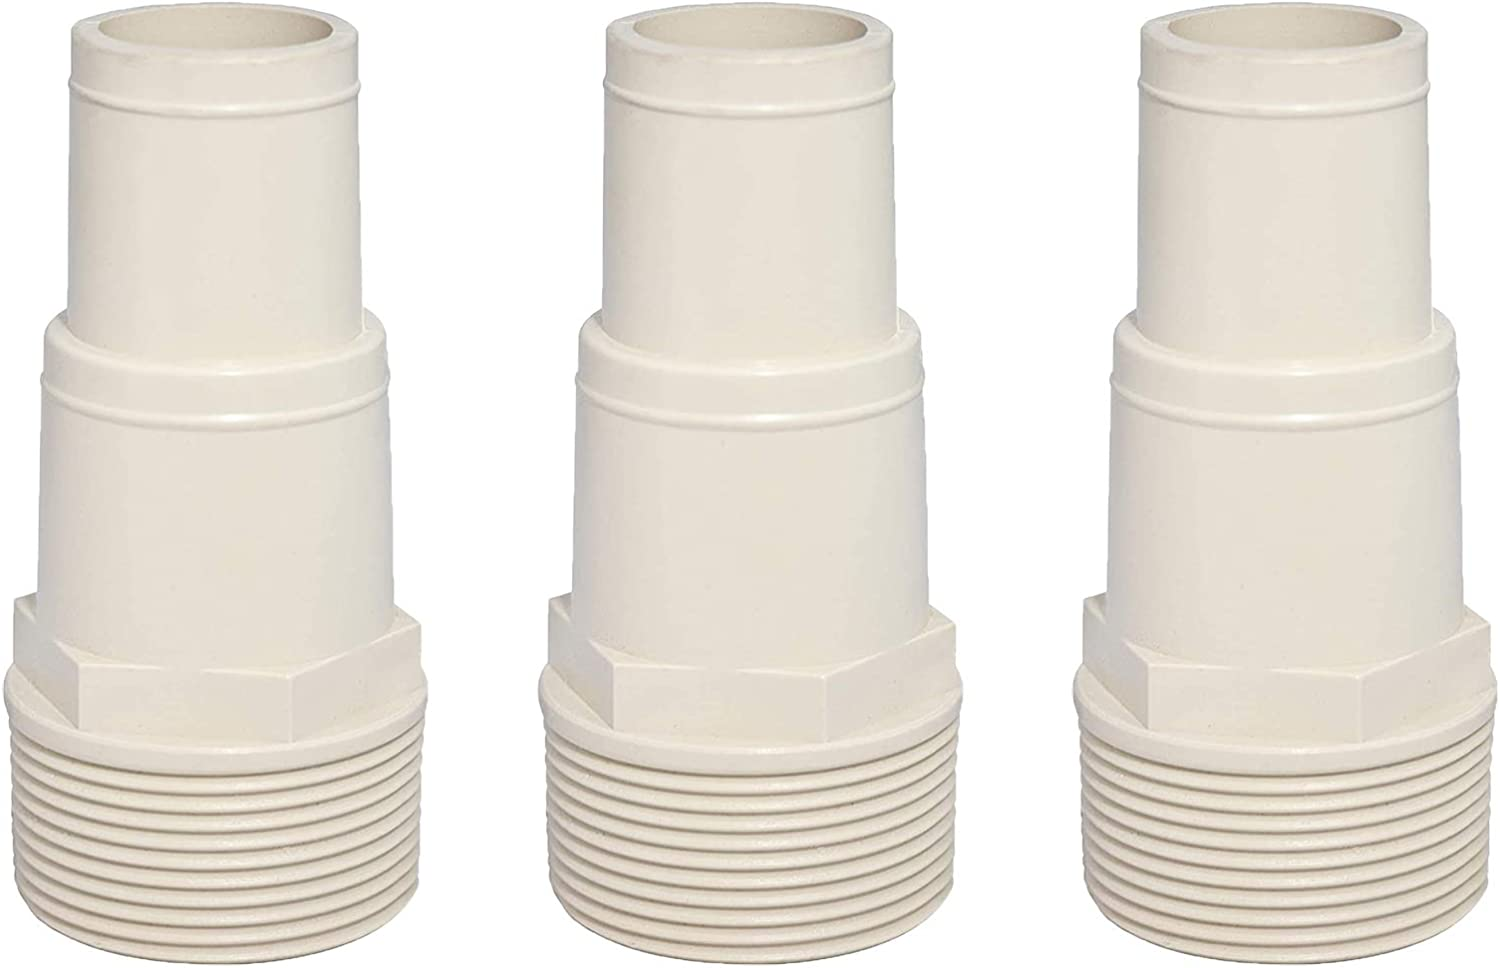 ATIE Pool Hose Male Connector Adapter Threaded End 1-1/2 Inch Replacement for Hayward SPX1091Z7 (3 Pack)